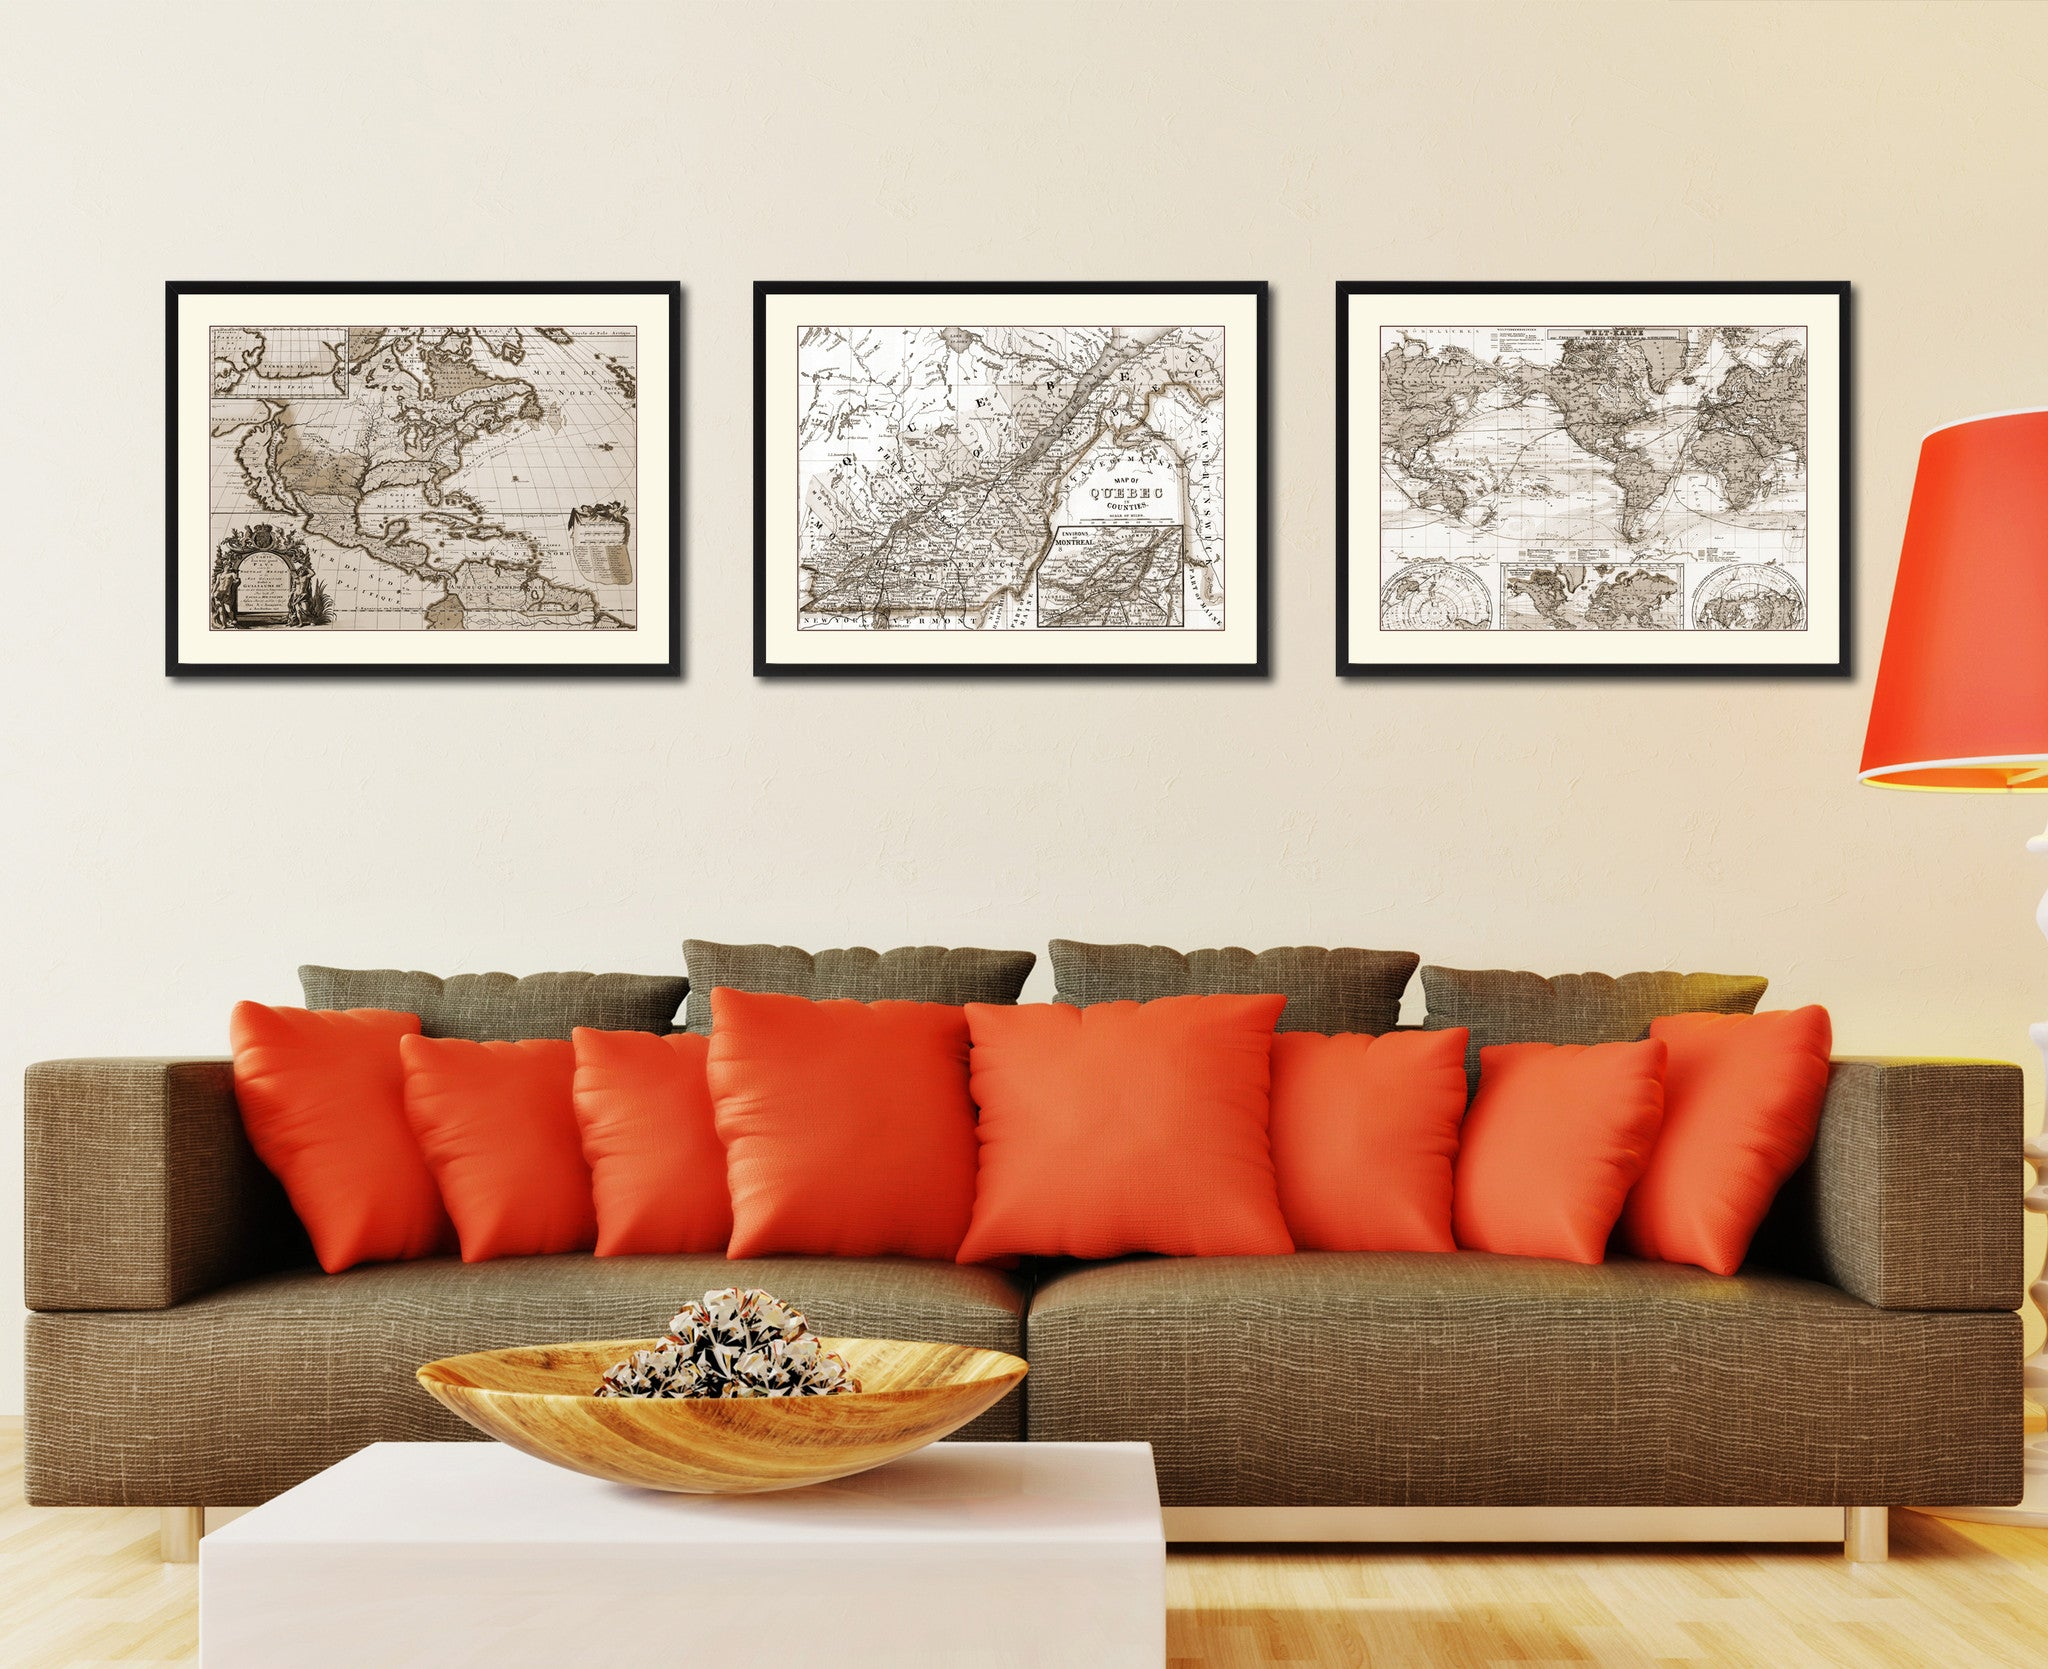 Quebec Montreal Vintage Sepia Map Canvas Print, Picture Frame Gifts Home Decor  Wall Art Decoration